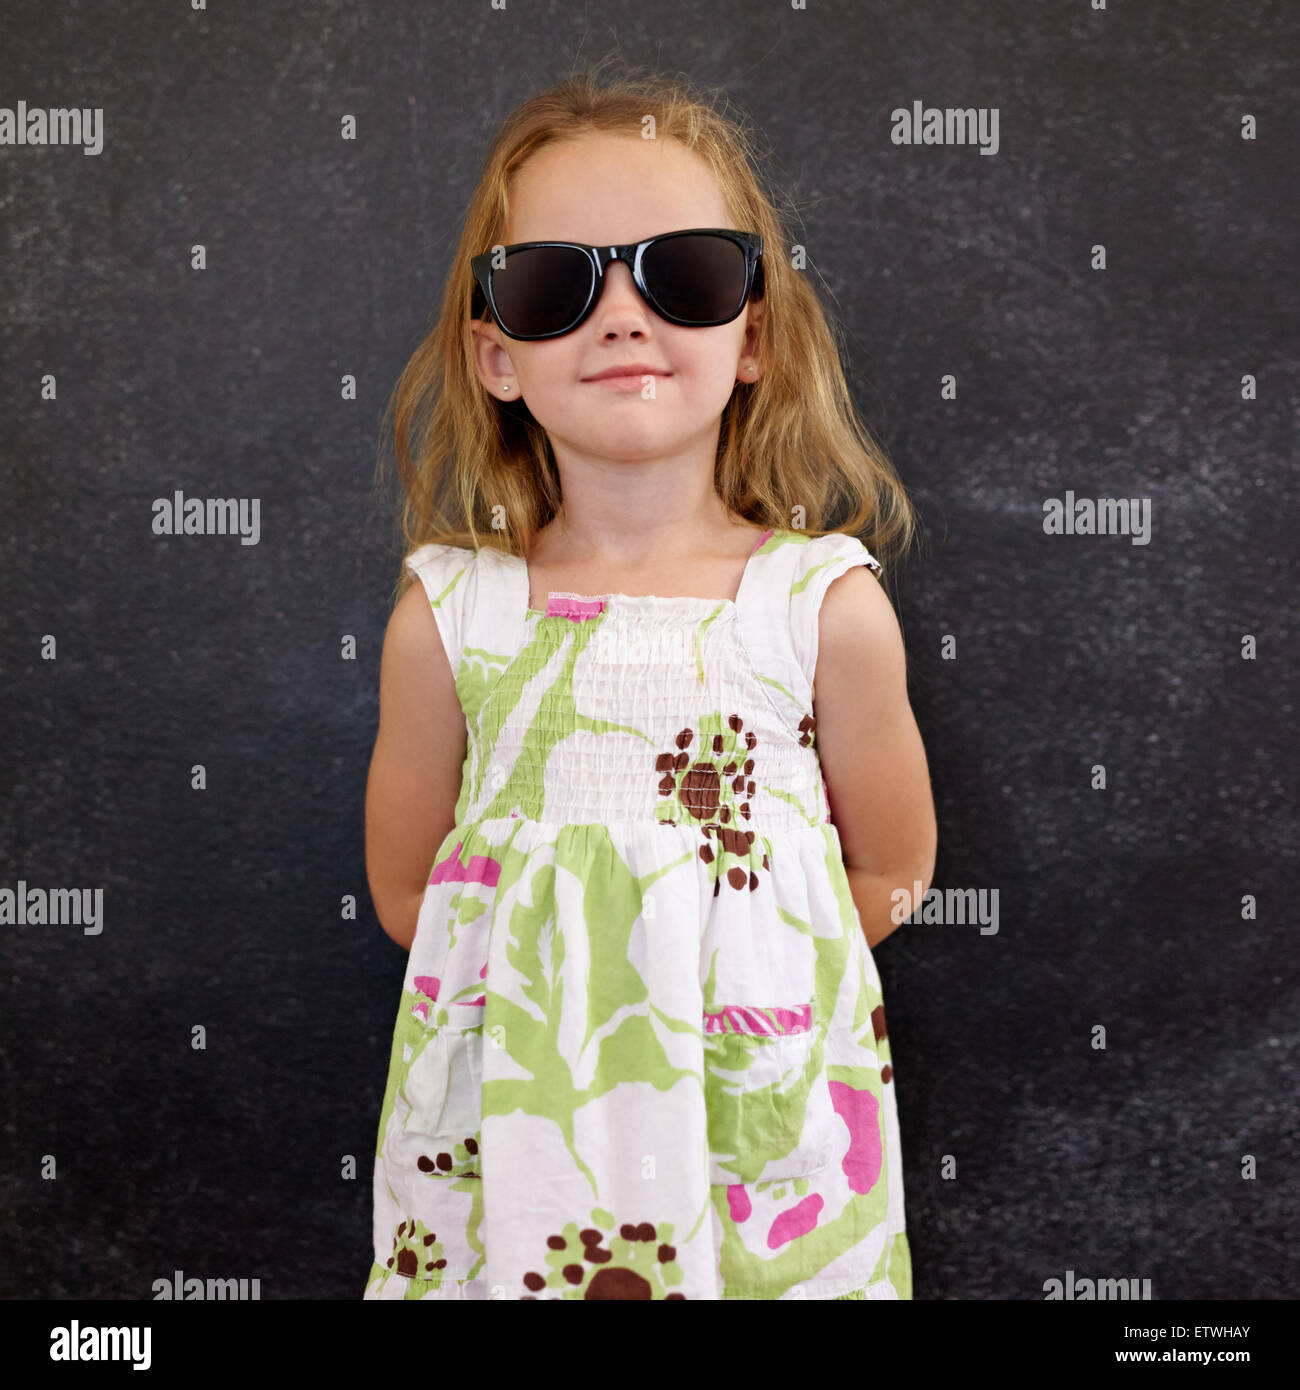 Portrait of beautiful little girl wearing sunglasses posing at camera against a black wall. Stock Photo